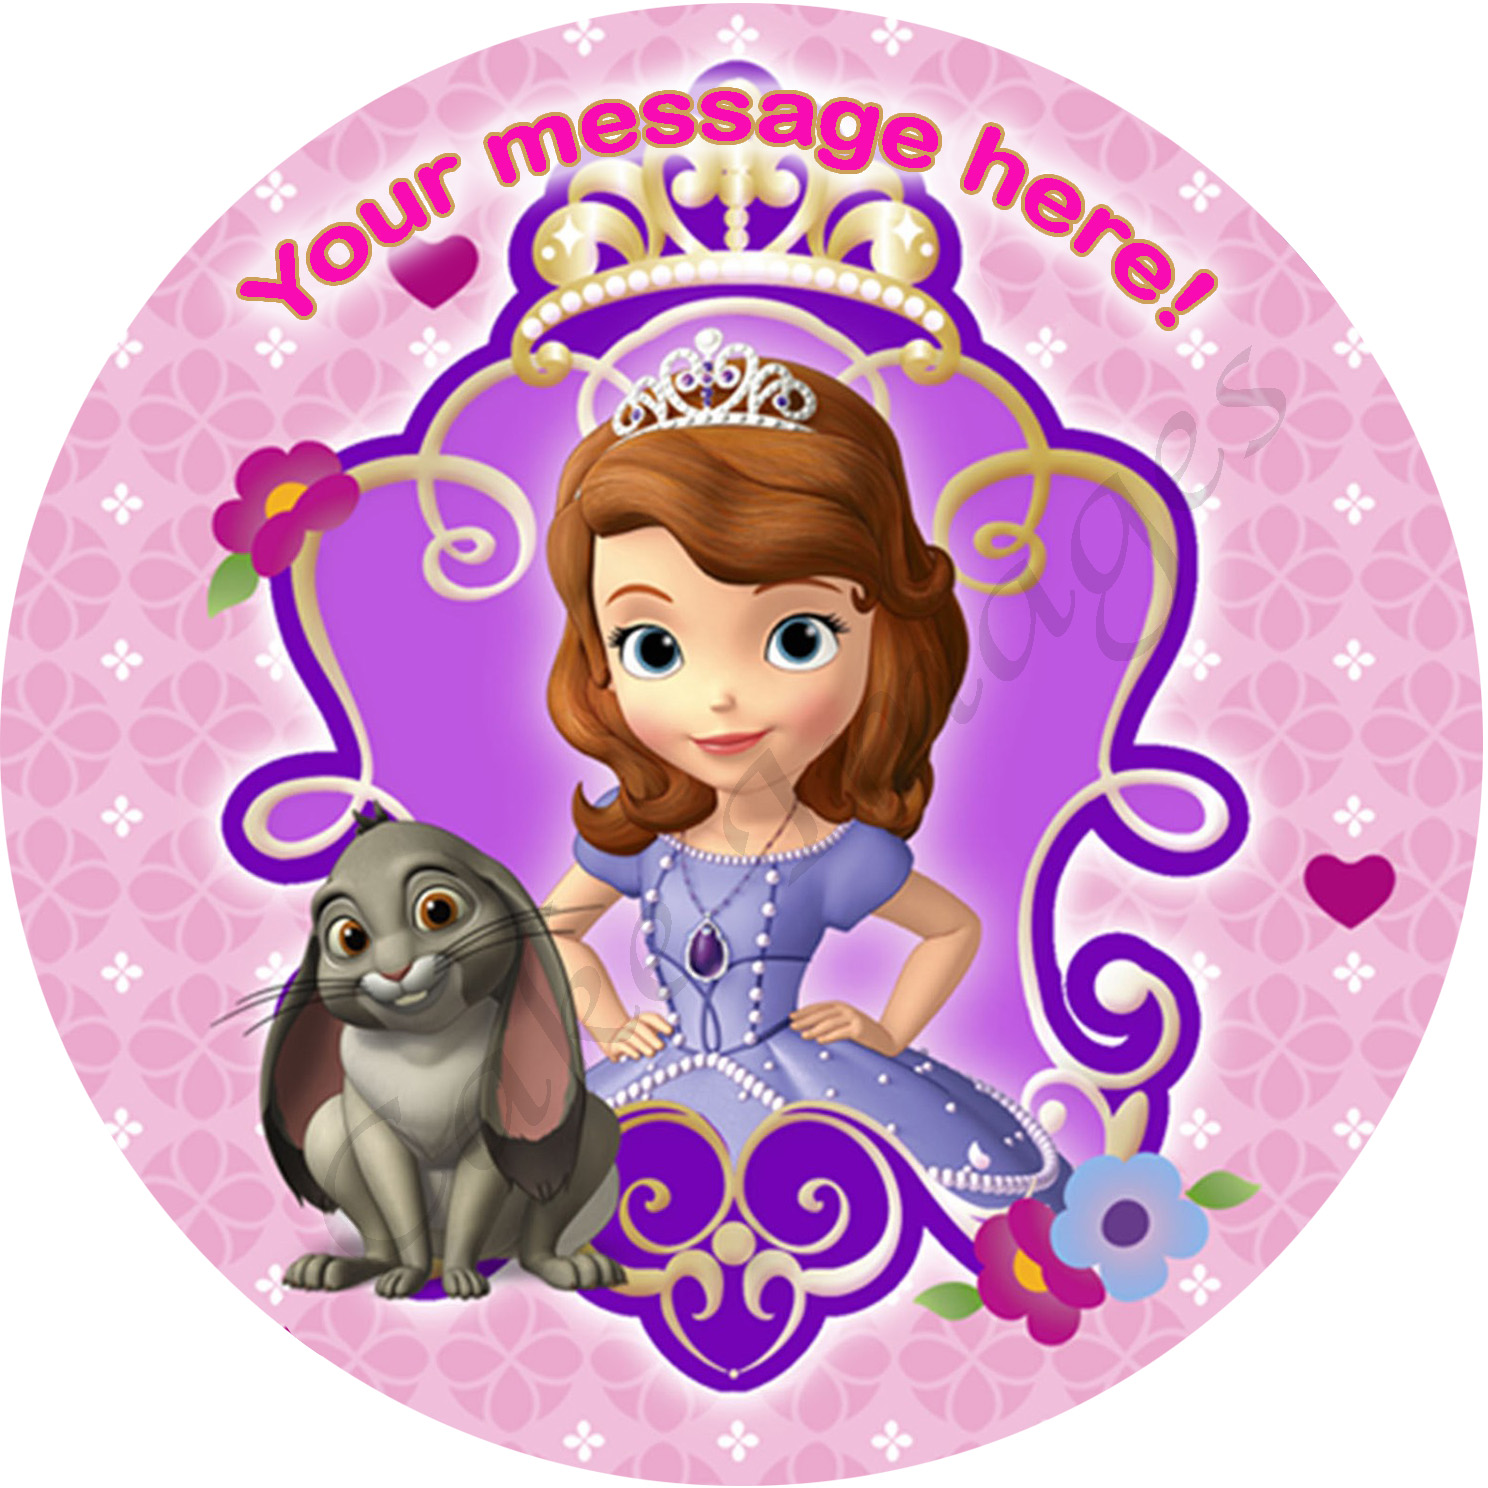 sofia the personalised edible cake image 2 the